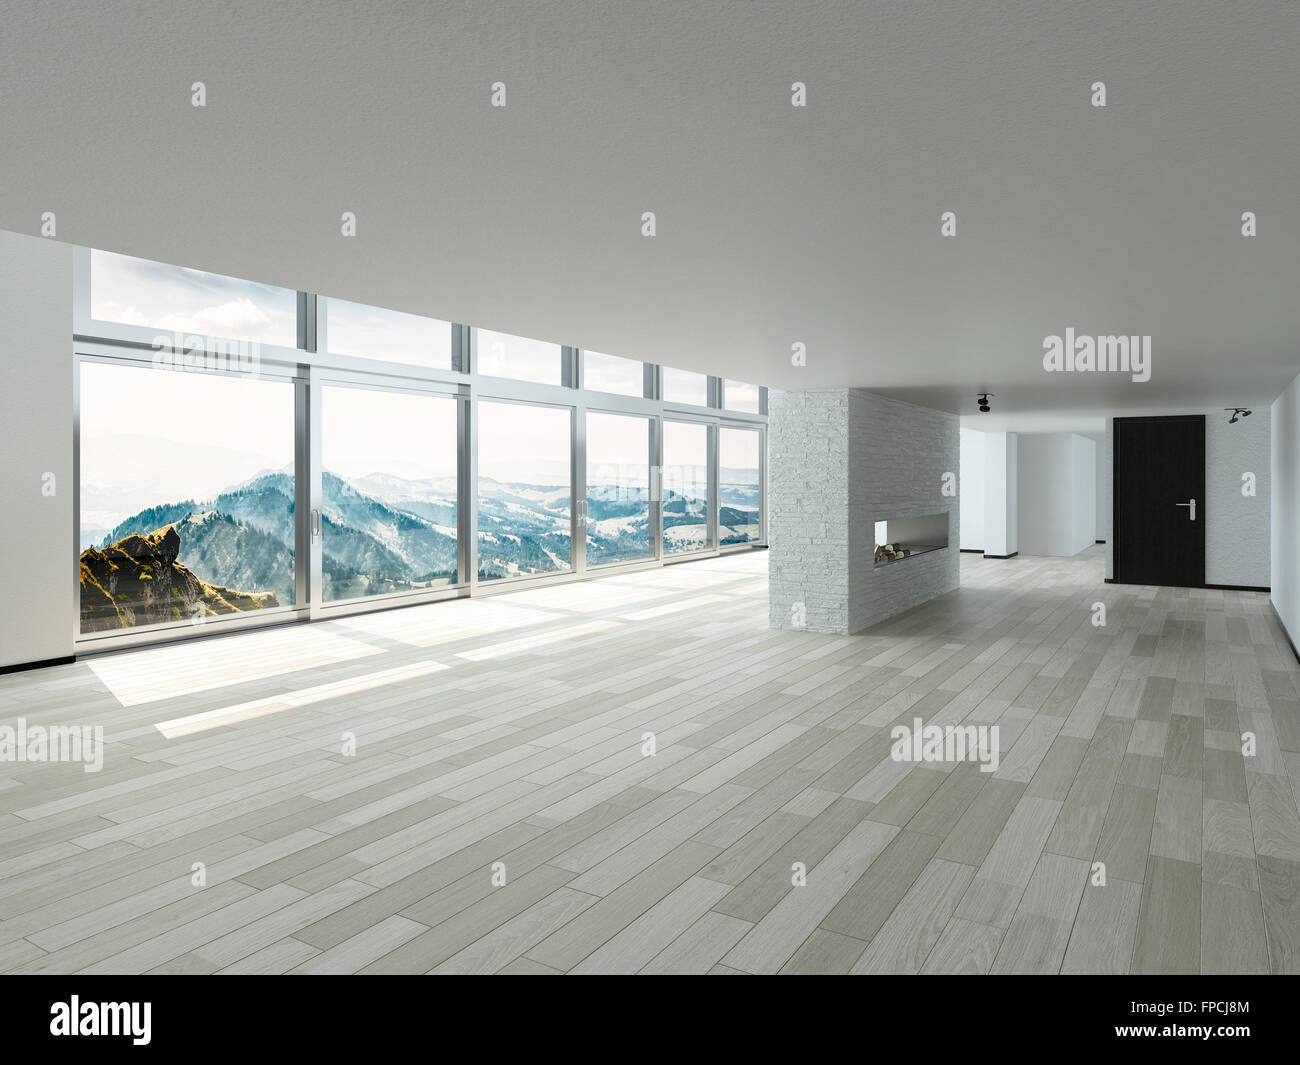 nd New Empty Architectural House Building Interior Design with ... Outside Of House Interior Design on outside front entry design, outside bathroom design, outside kitchen design, outside windows design, outside wedding design, outside floor design, outside garage design, outside door design, outside house design, outside basement design,